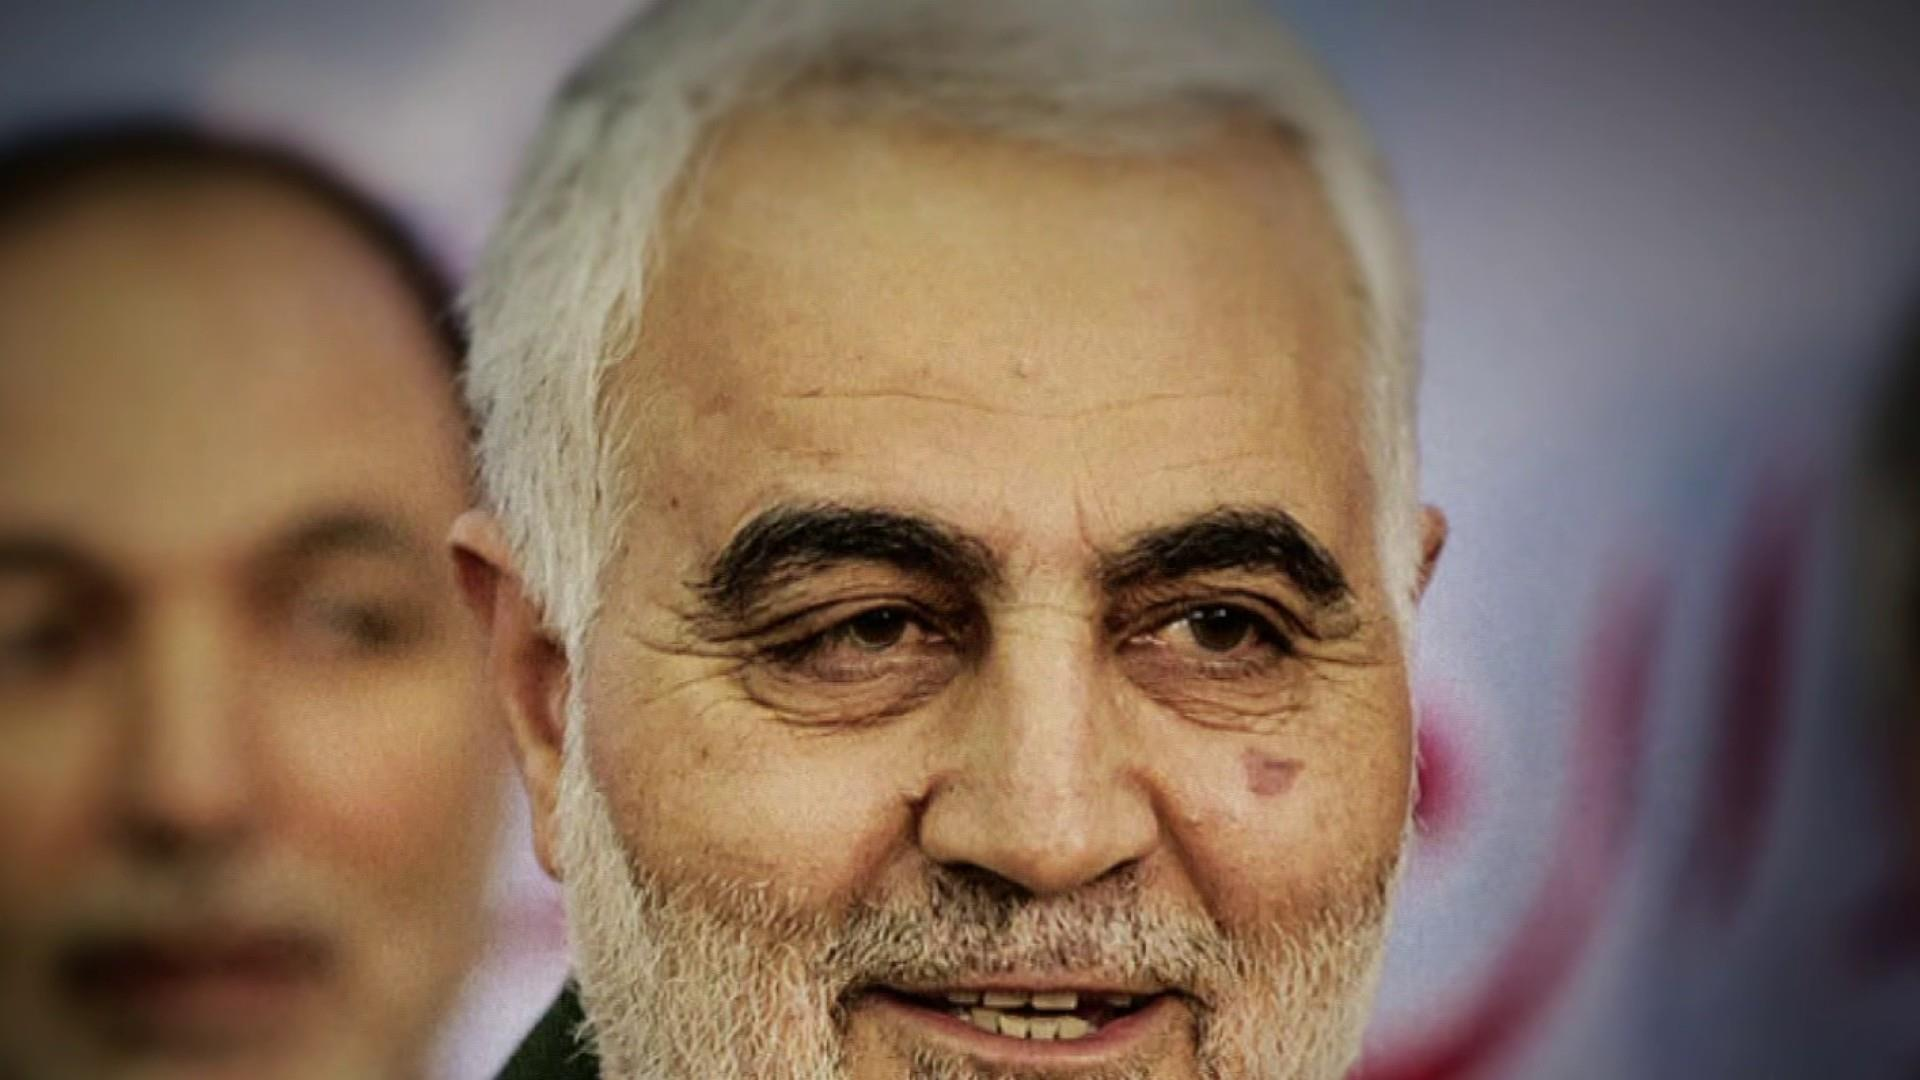 U.S. airstrike kills top Iran general, Qassem Soleimani, at Baghdad airport